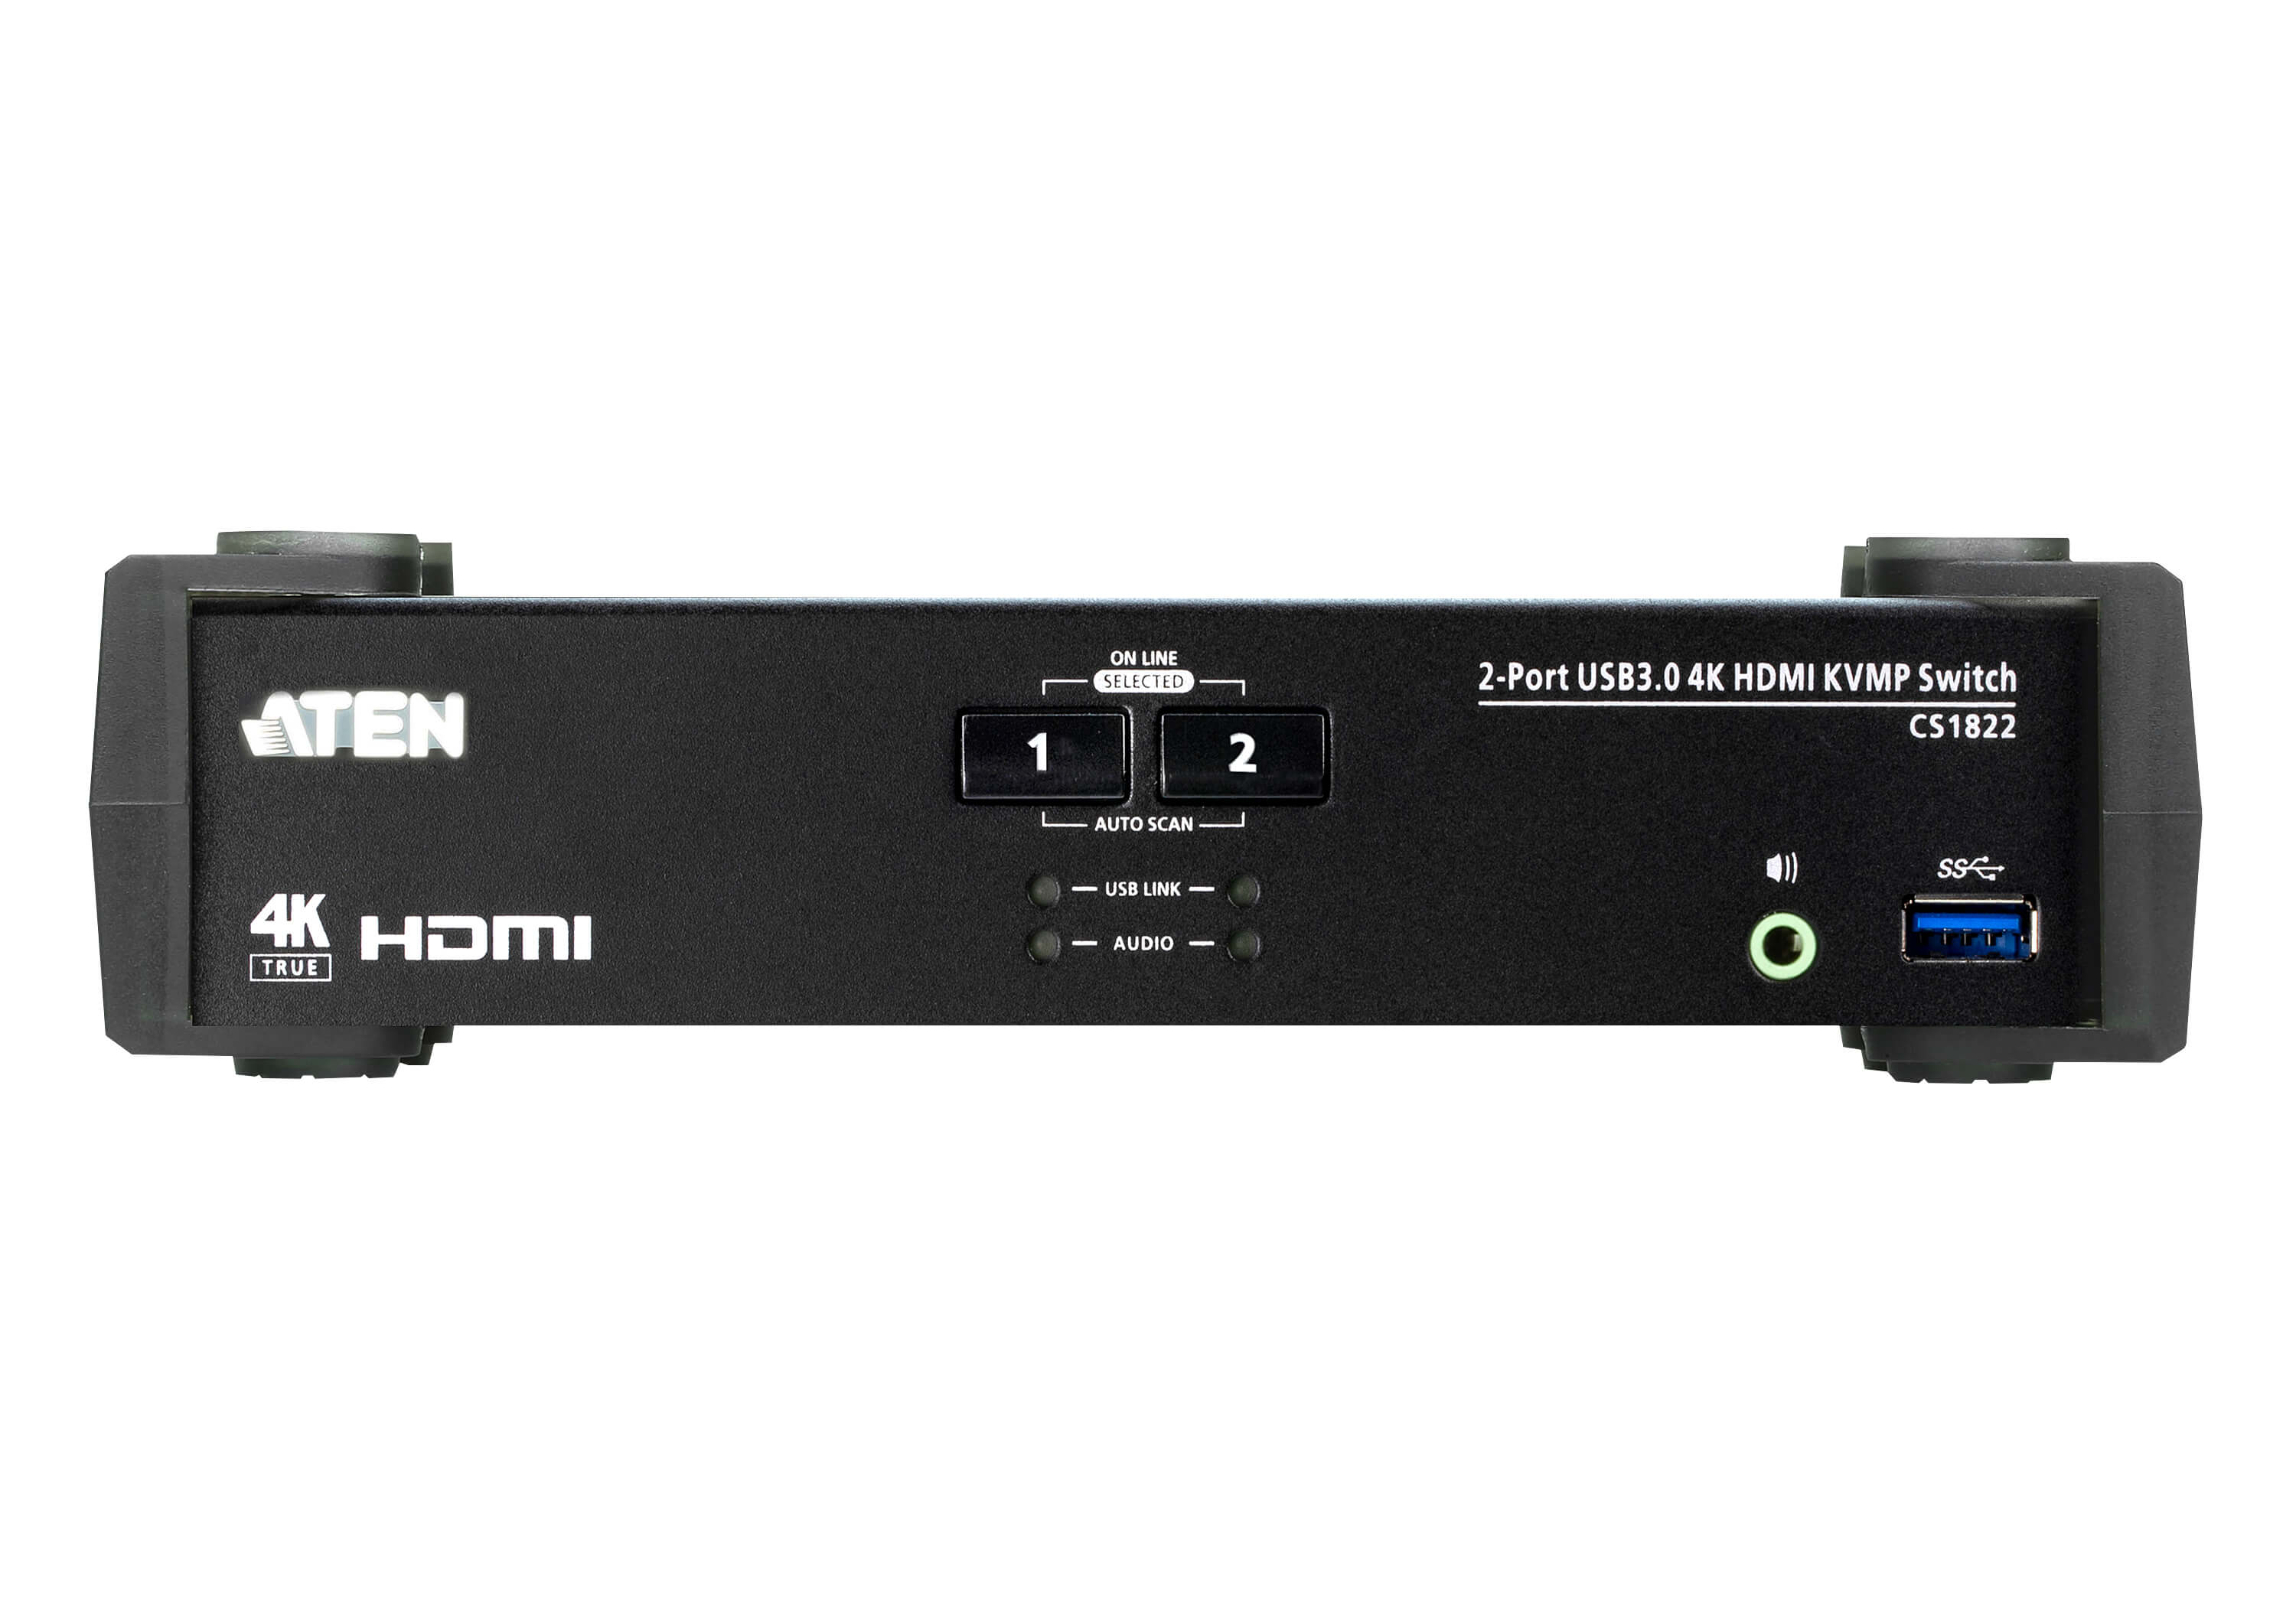 2-Port USB 3.0 4K HDMI KVMP™ Switch-3